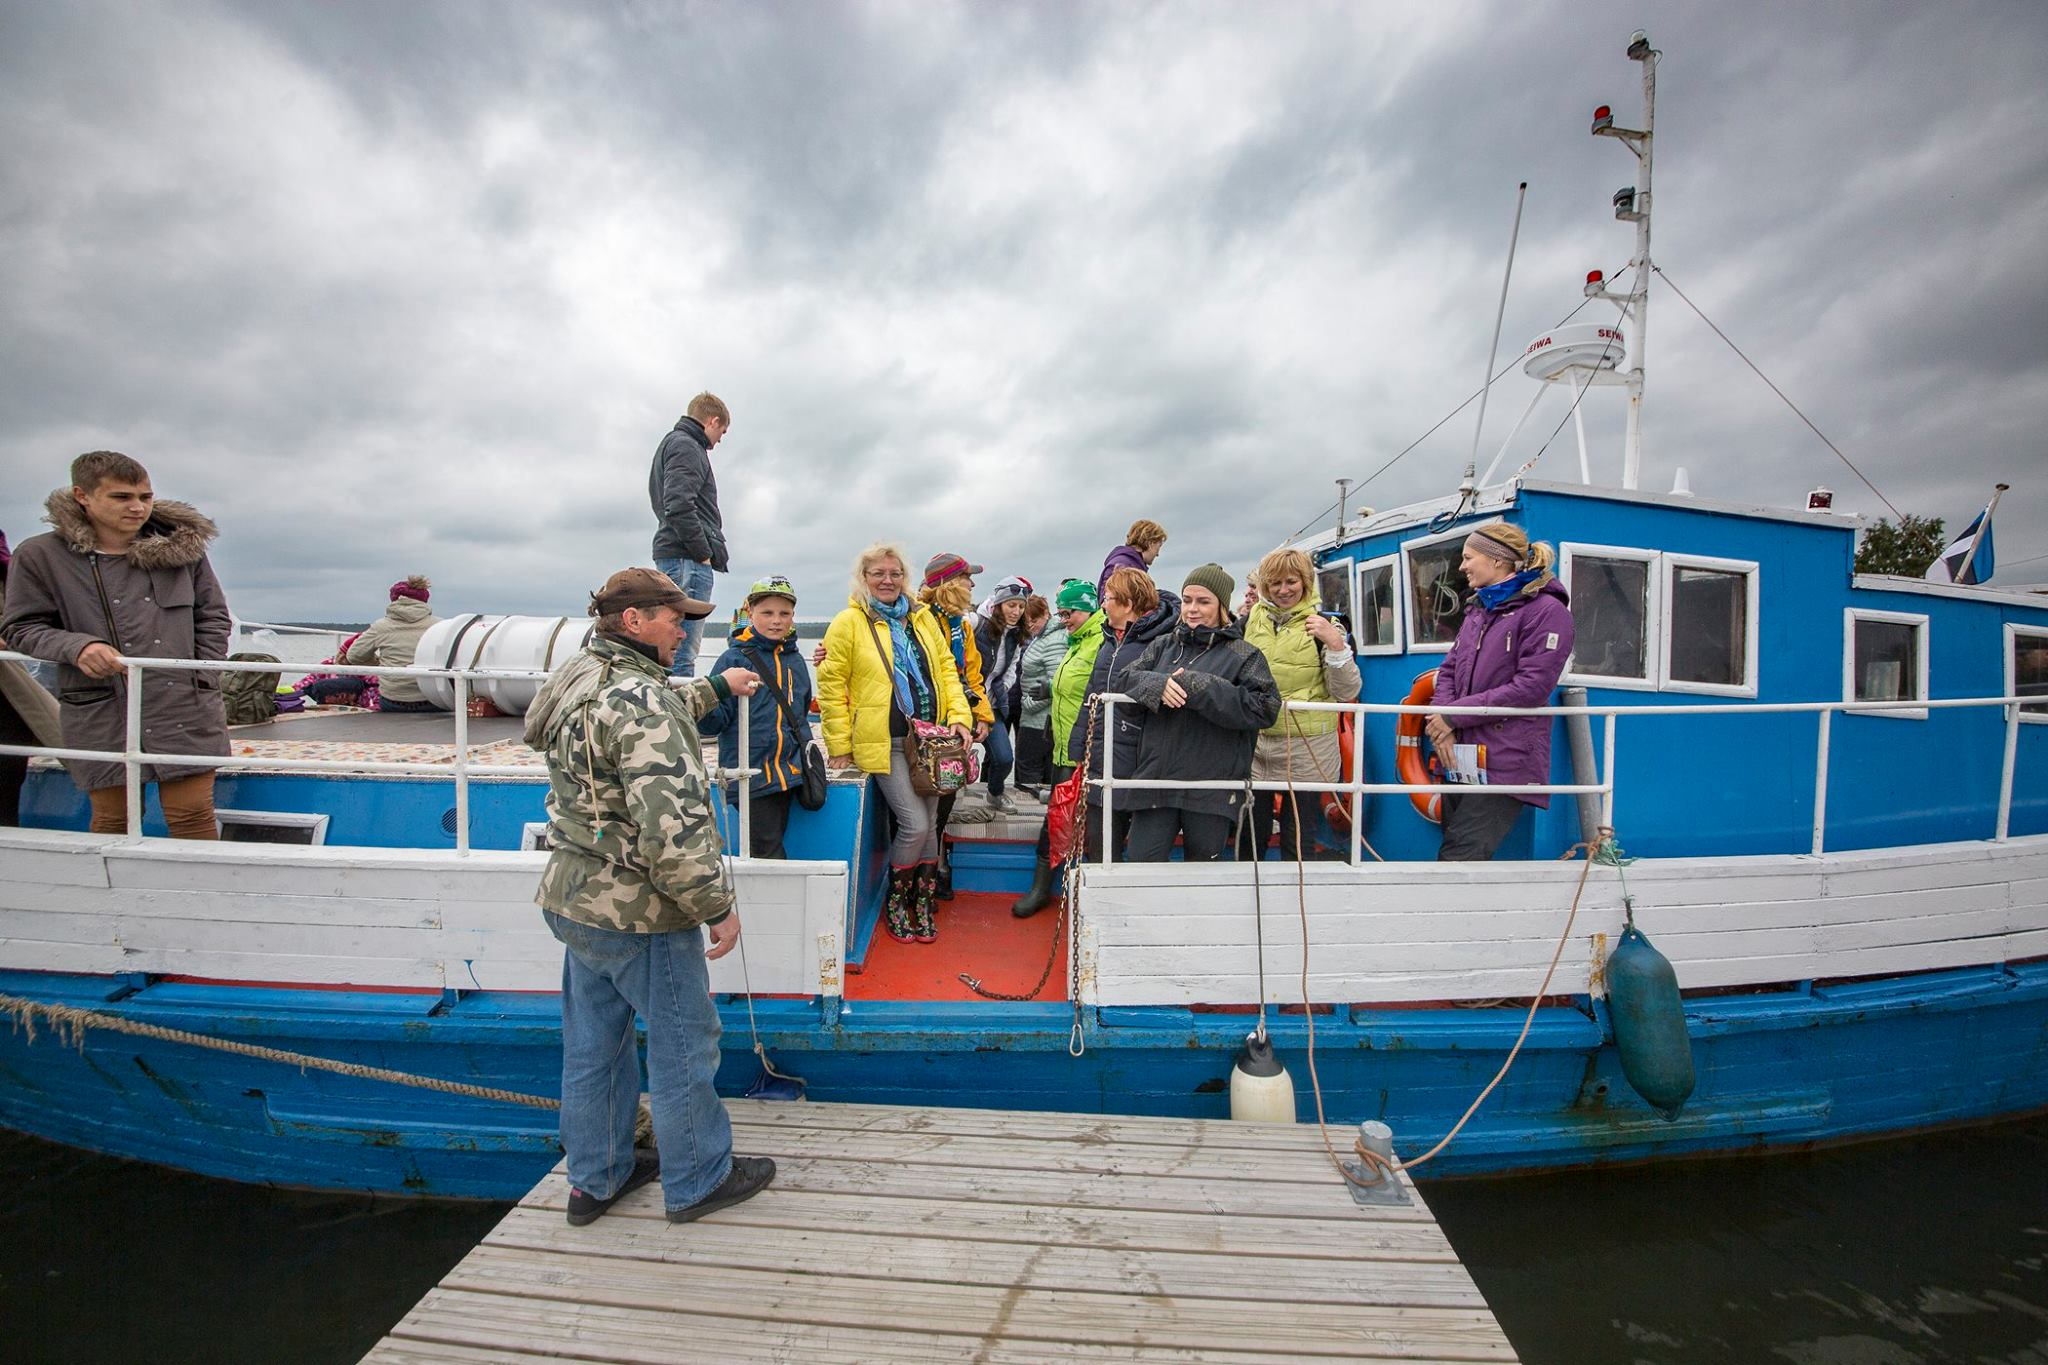 Gennadi Shleev. On our way to Malusi islands to spot some grey seals of the Baltic sea.